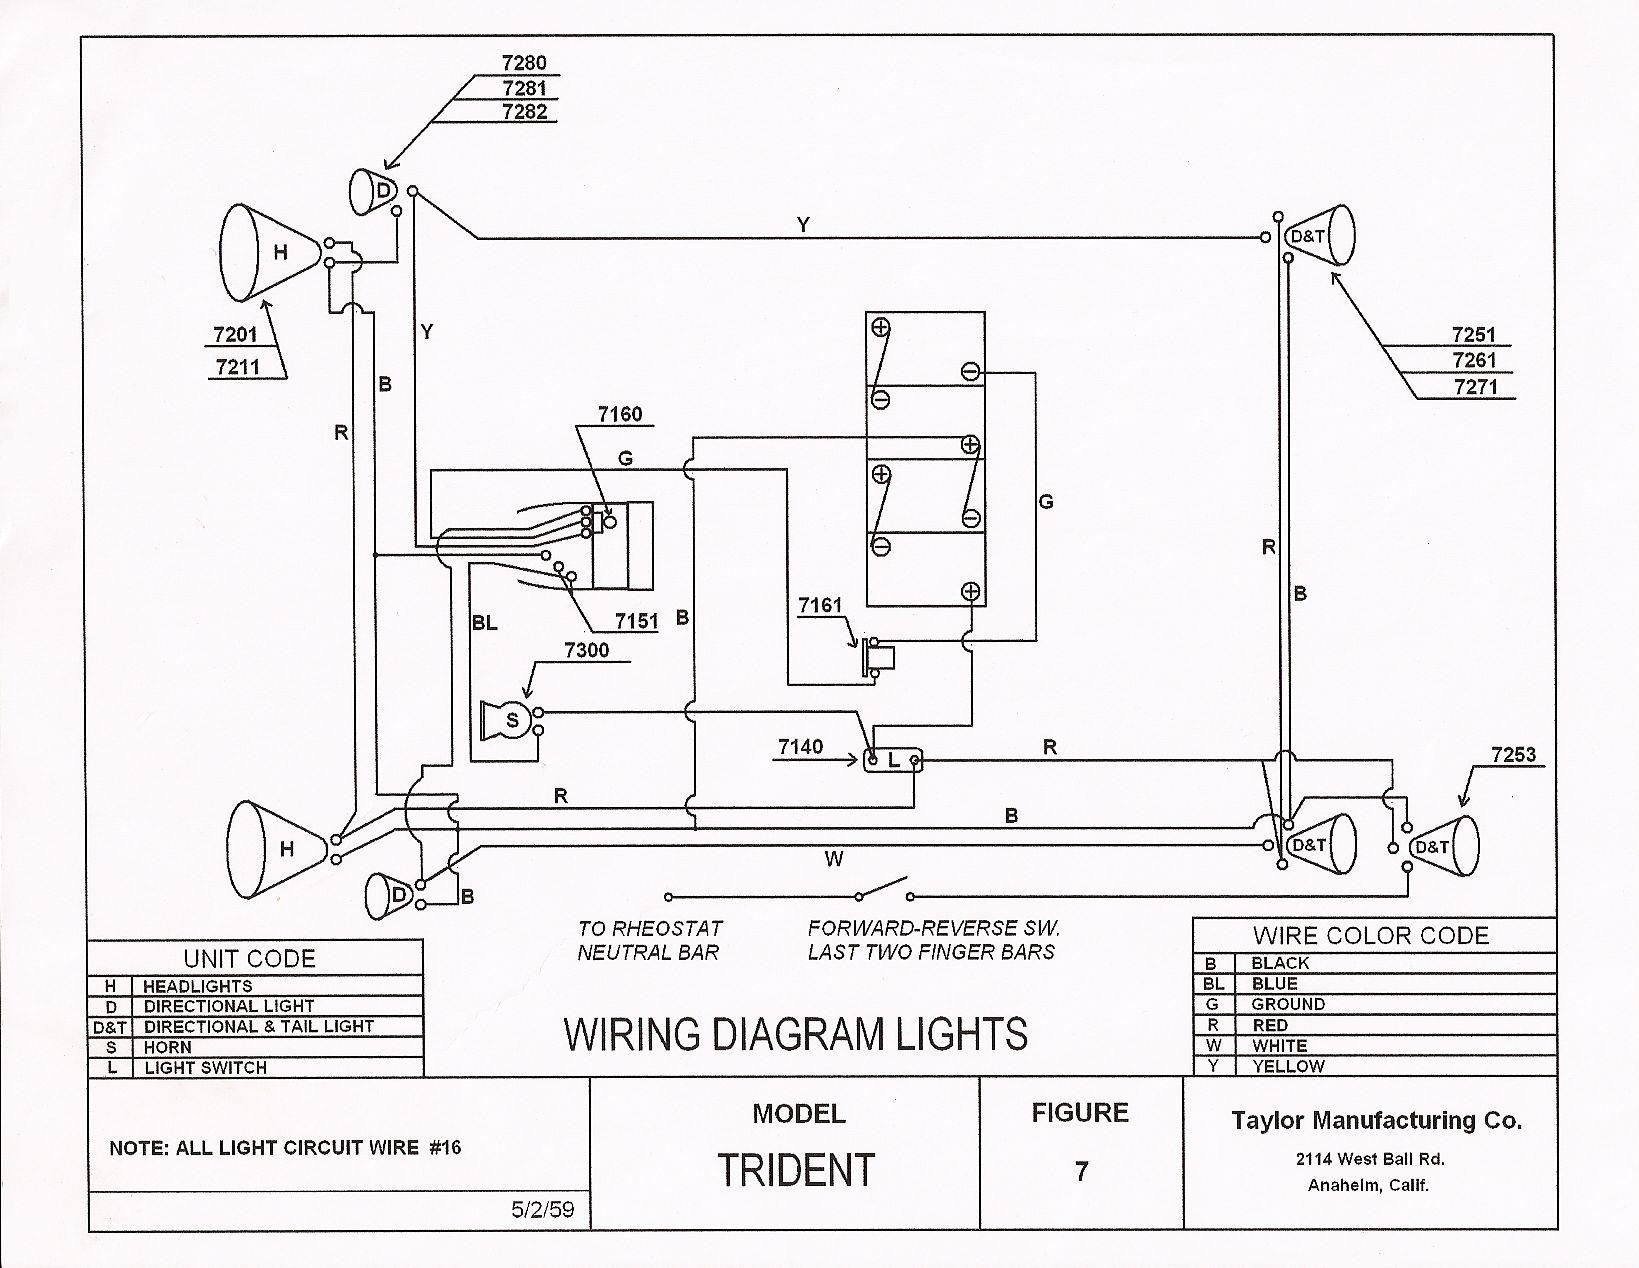 hight resolution of taylor dunn 36 volt wiring diagram taylor dunn 36 volt wiring diagram 36 volt battery